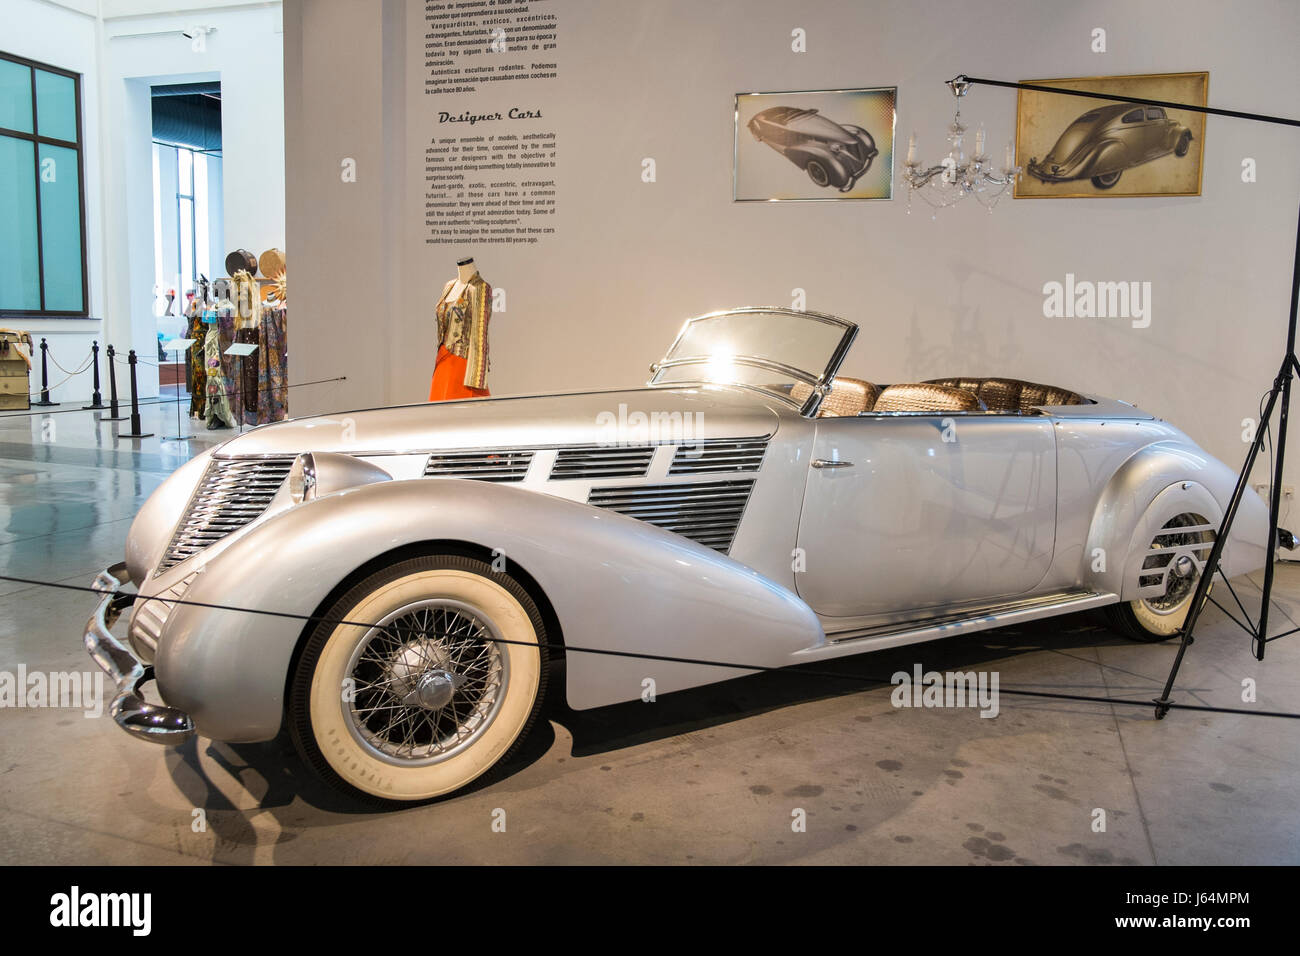 1939 Lancia Astura. 'The last work of Vincenzo'. Automobile museum of Málaga, Andalusia, Spain. - Stock Image